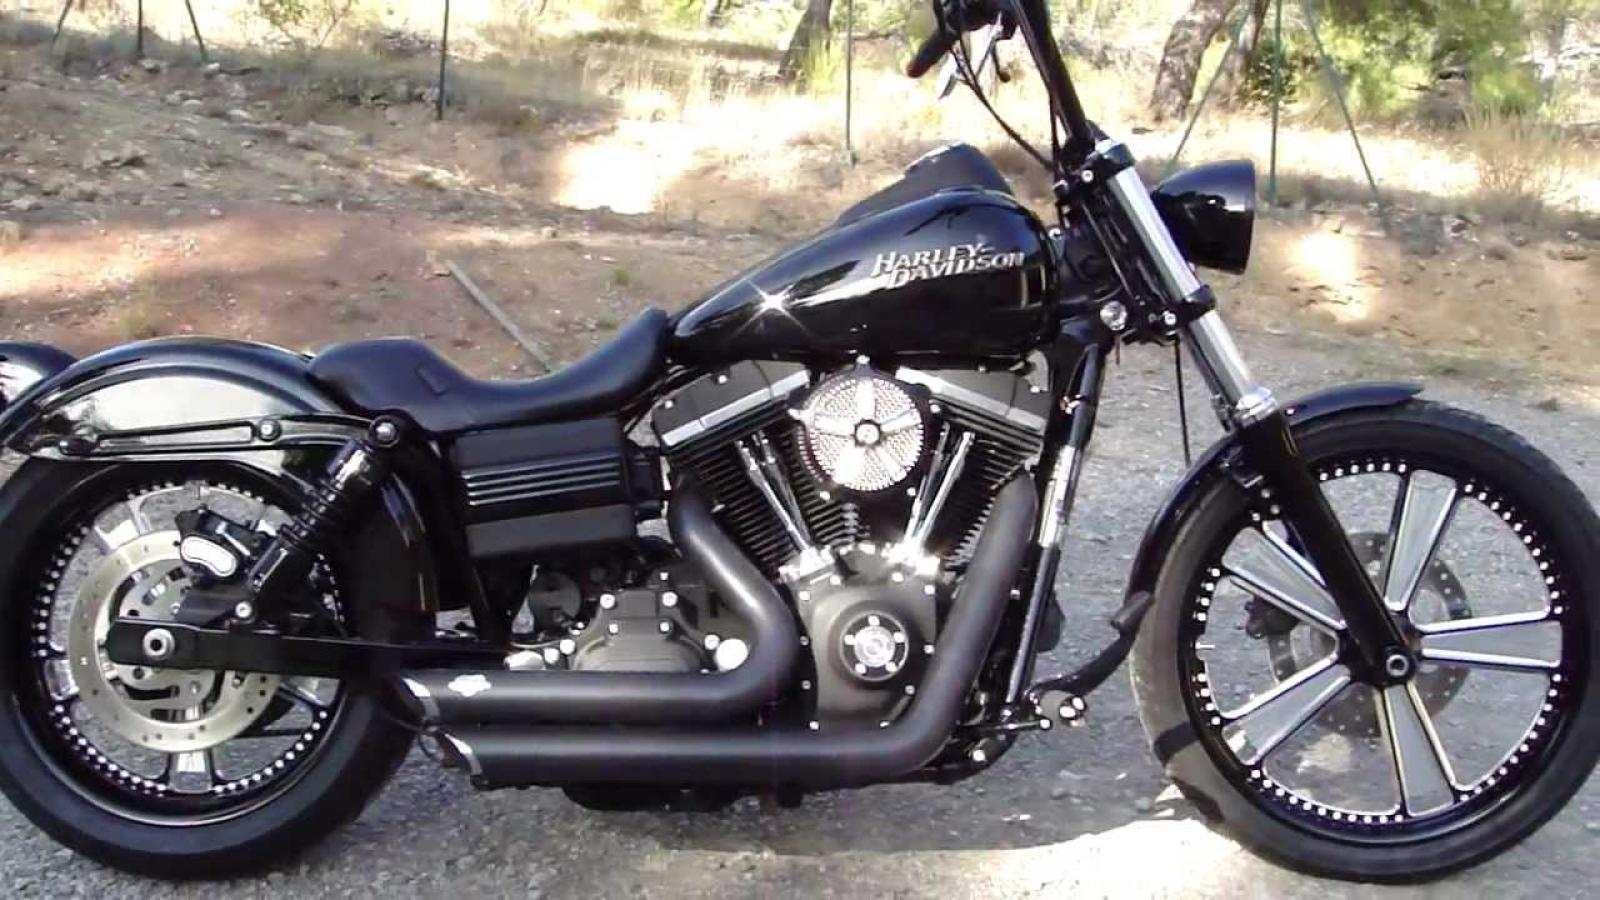 2008 harley davidson fxdb dyna street bob moto zombdrive com. Black Bedroom Furniture Sets. Home Design Ideas